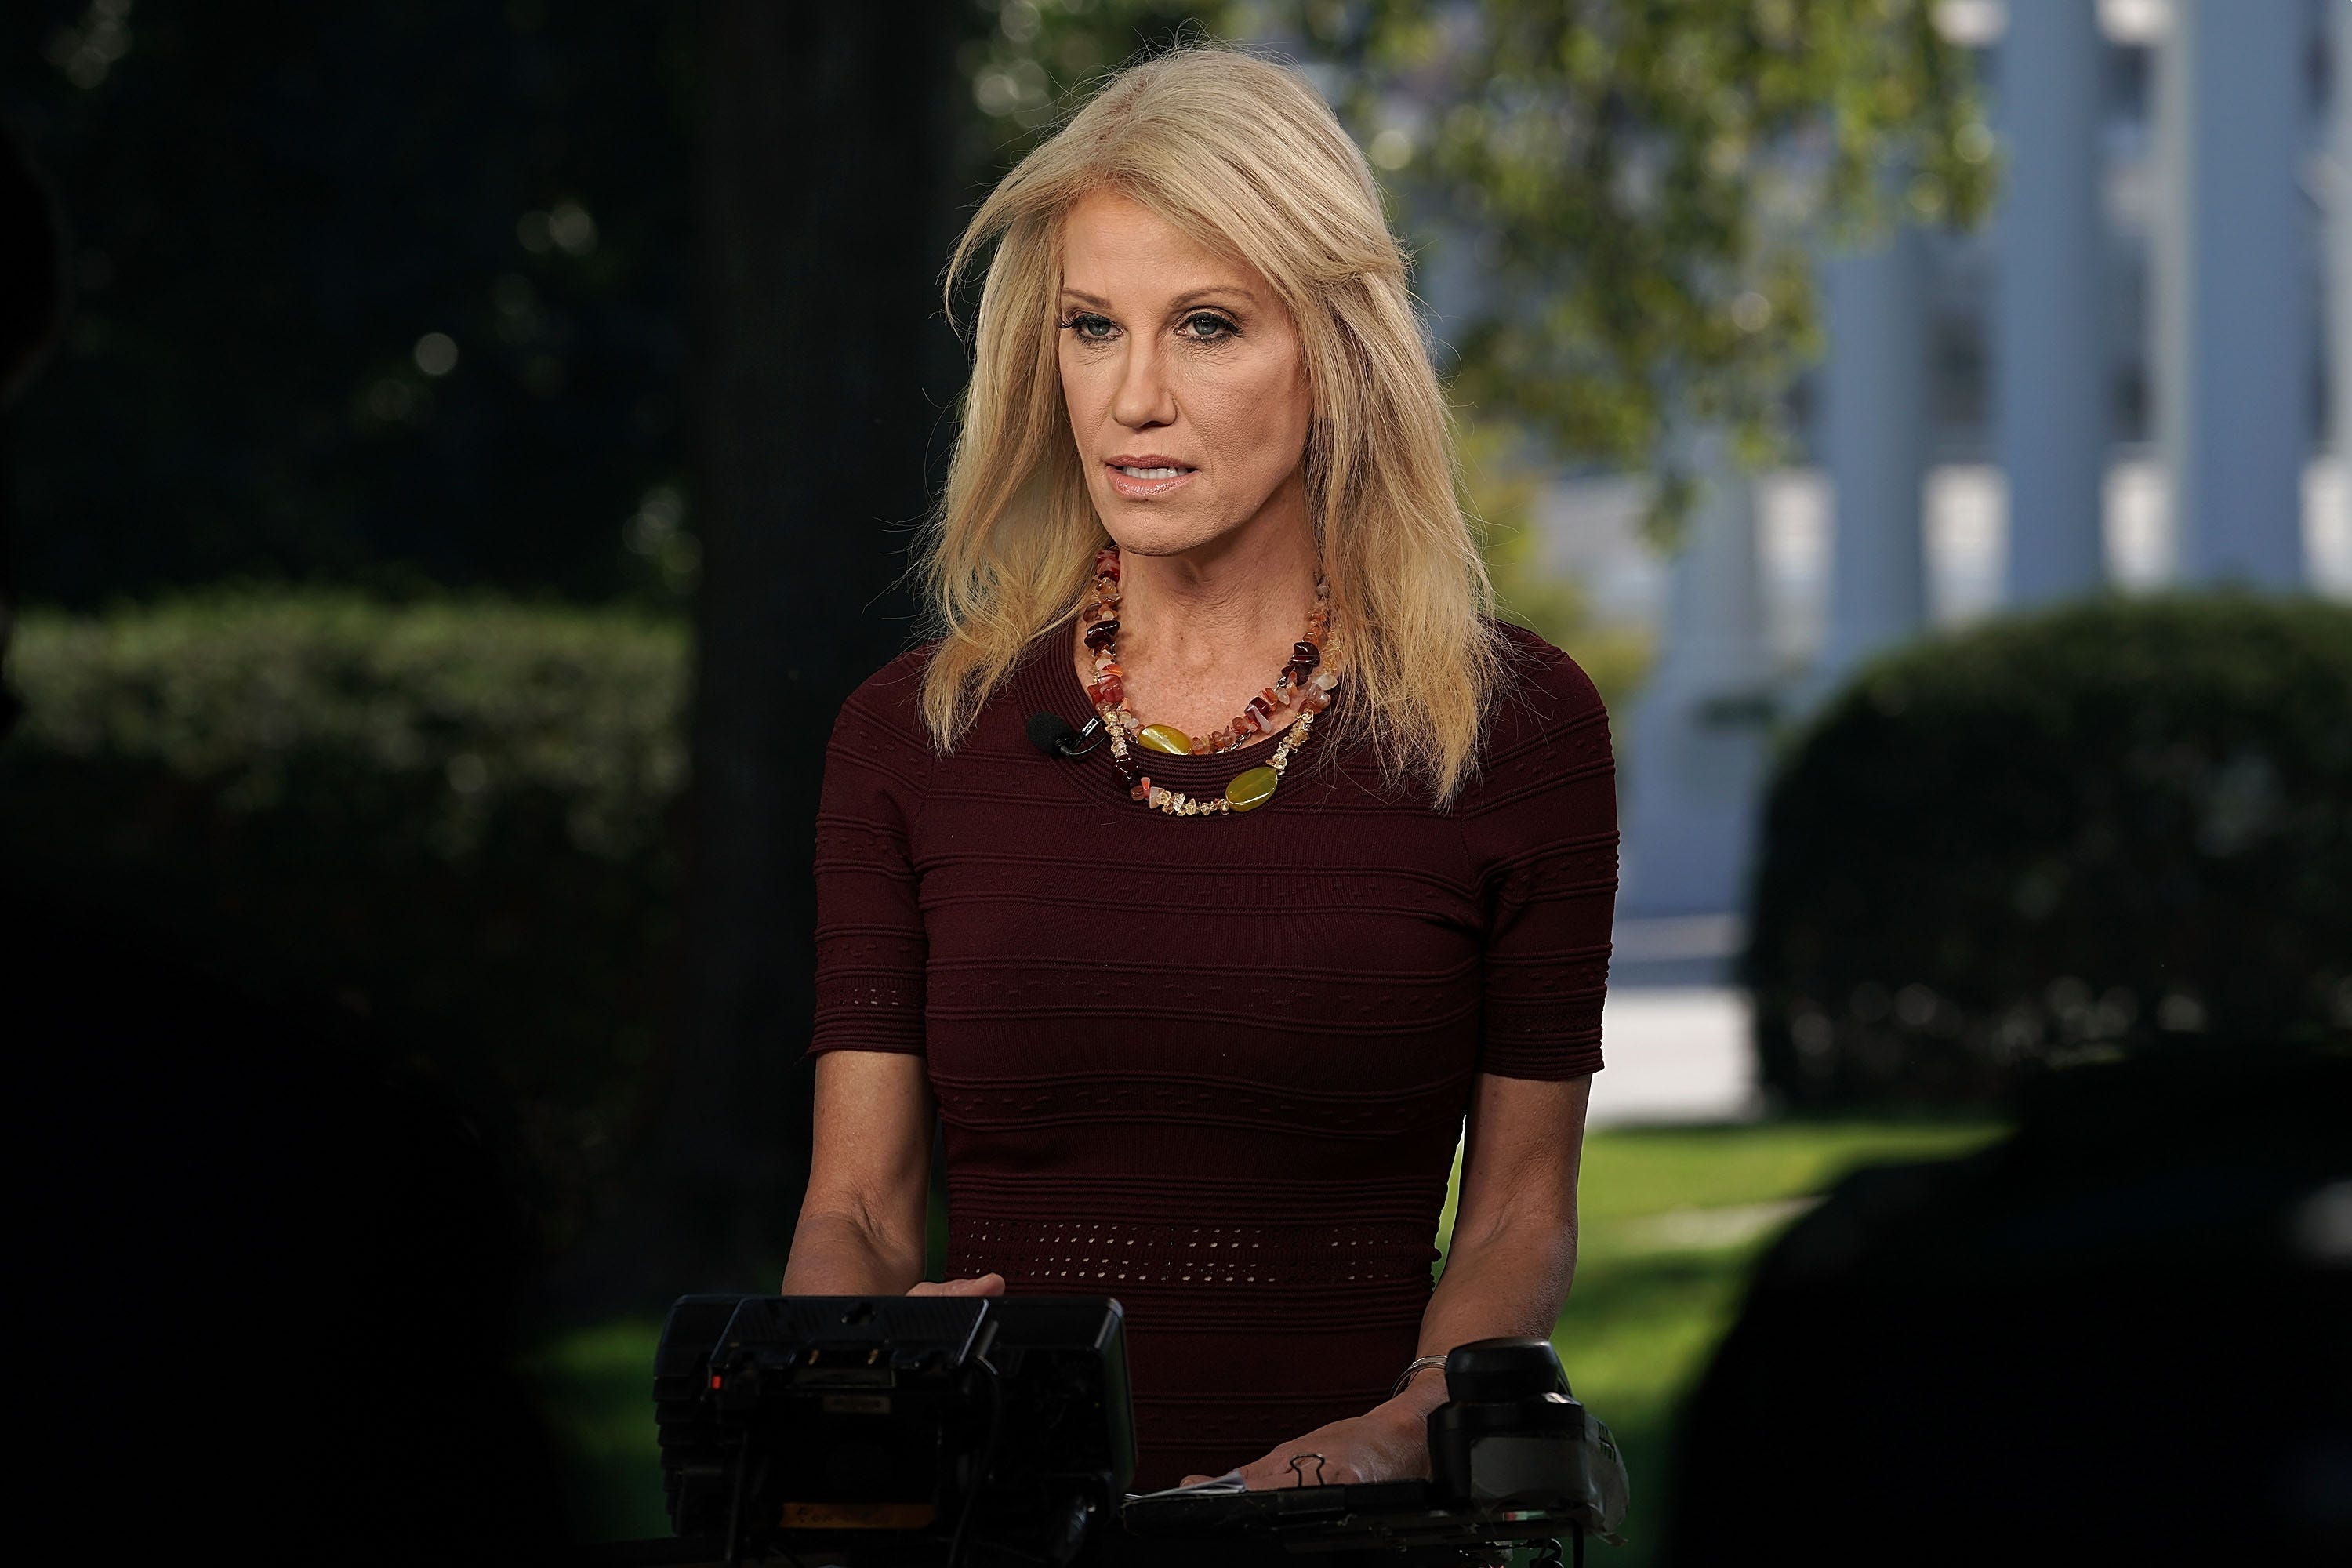 kellyanne-conway-aposs-husband-calls-trump-aposs-promotion-of-whitaker-aposunconstitutional-apos